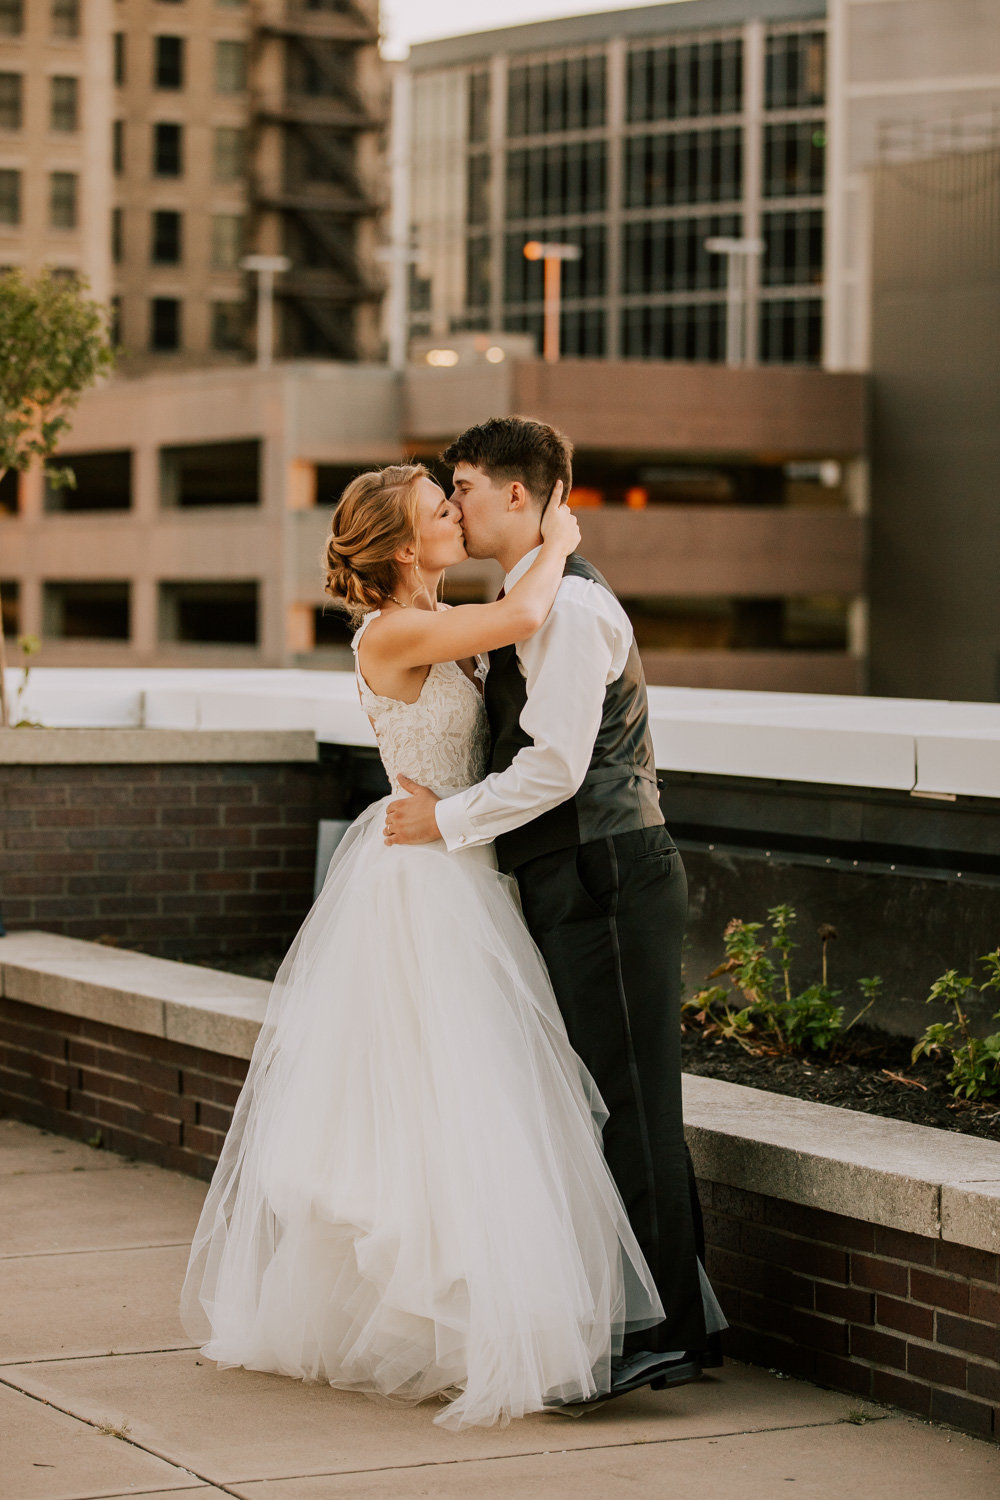 Rooftop-sunset-wedding-indianapolis-197